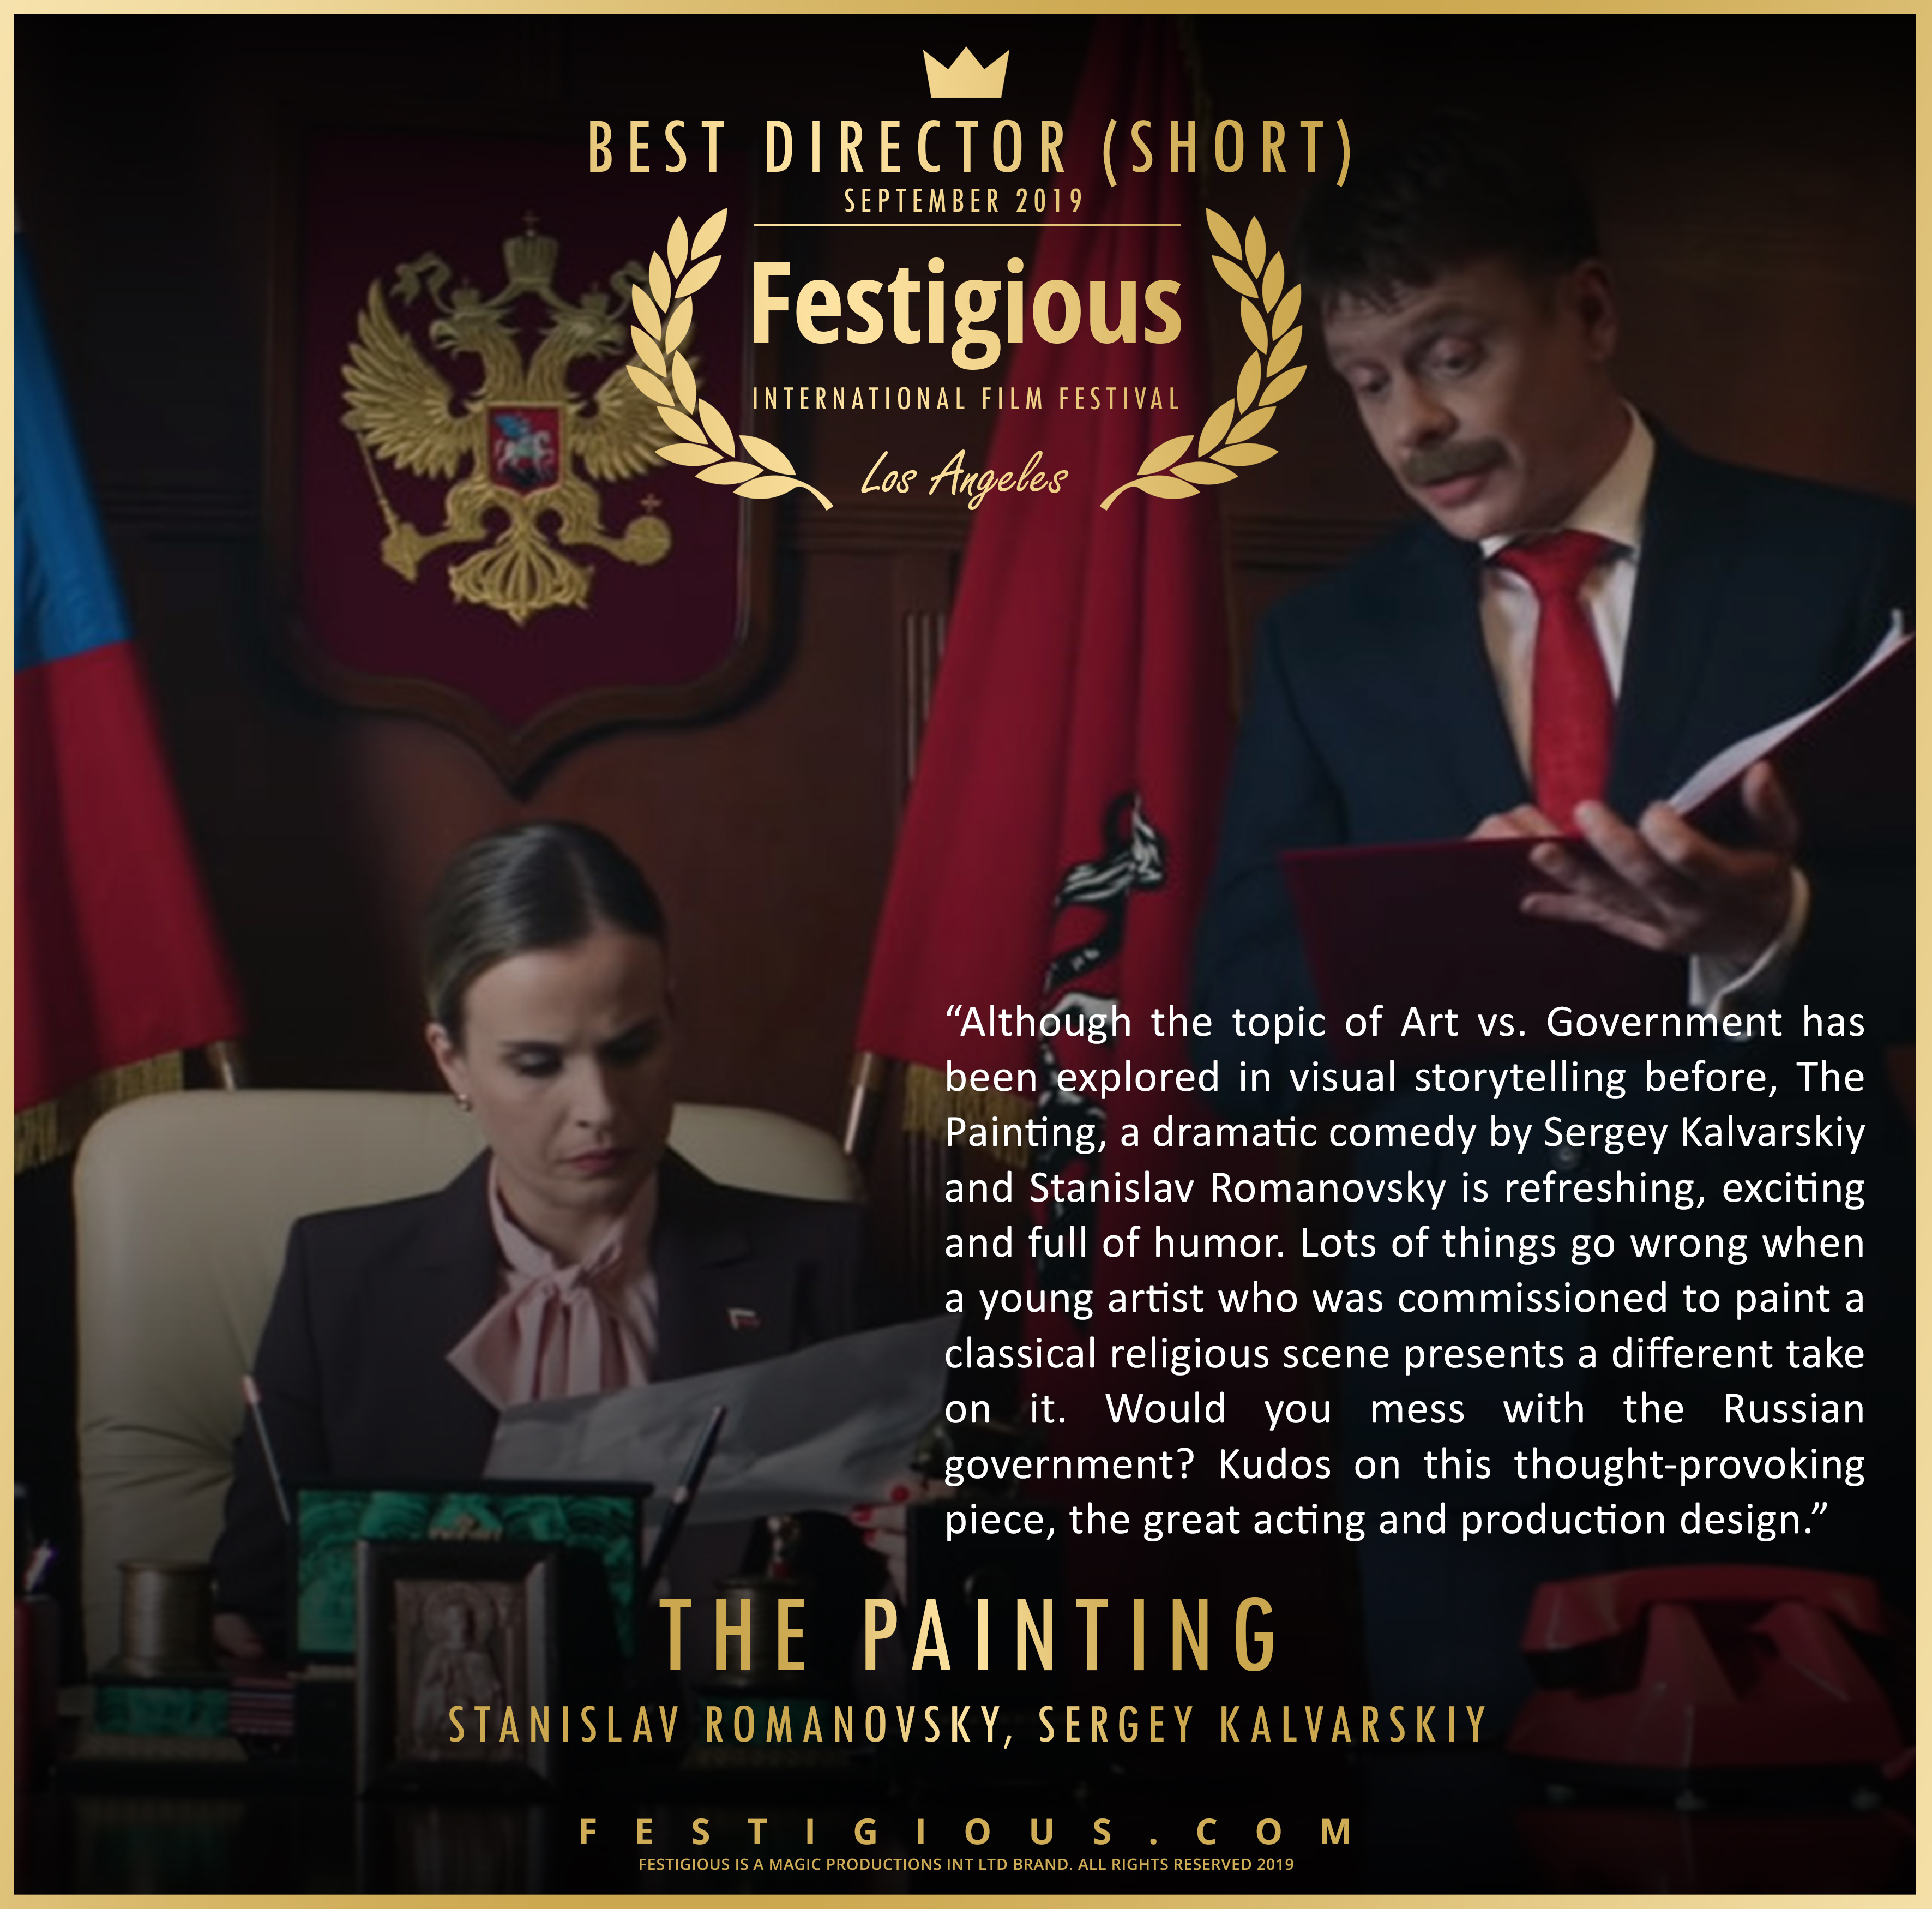 THE PAINTING review